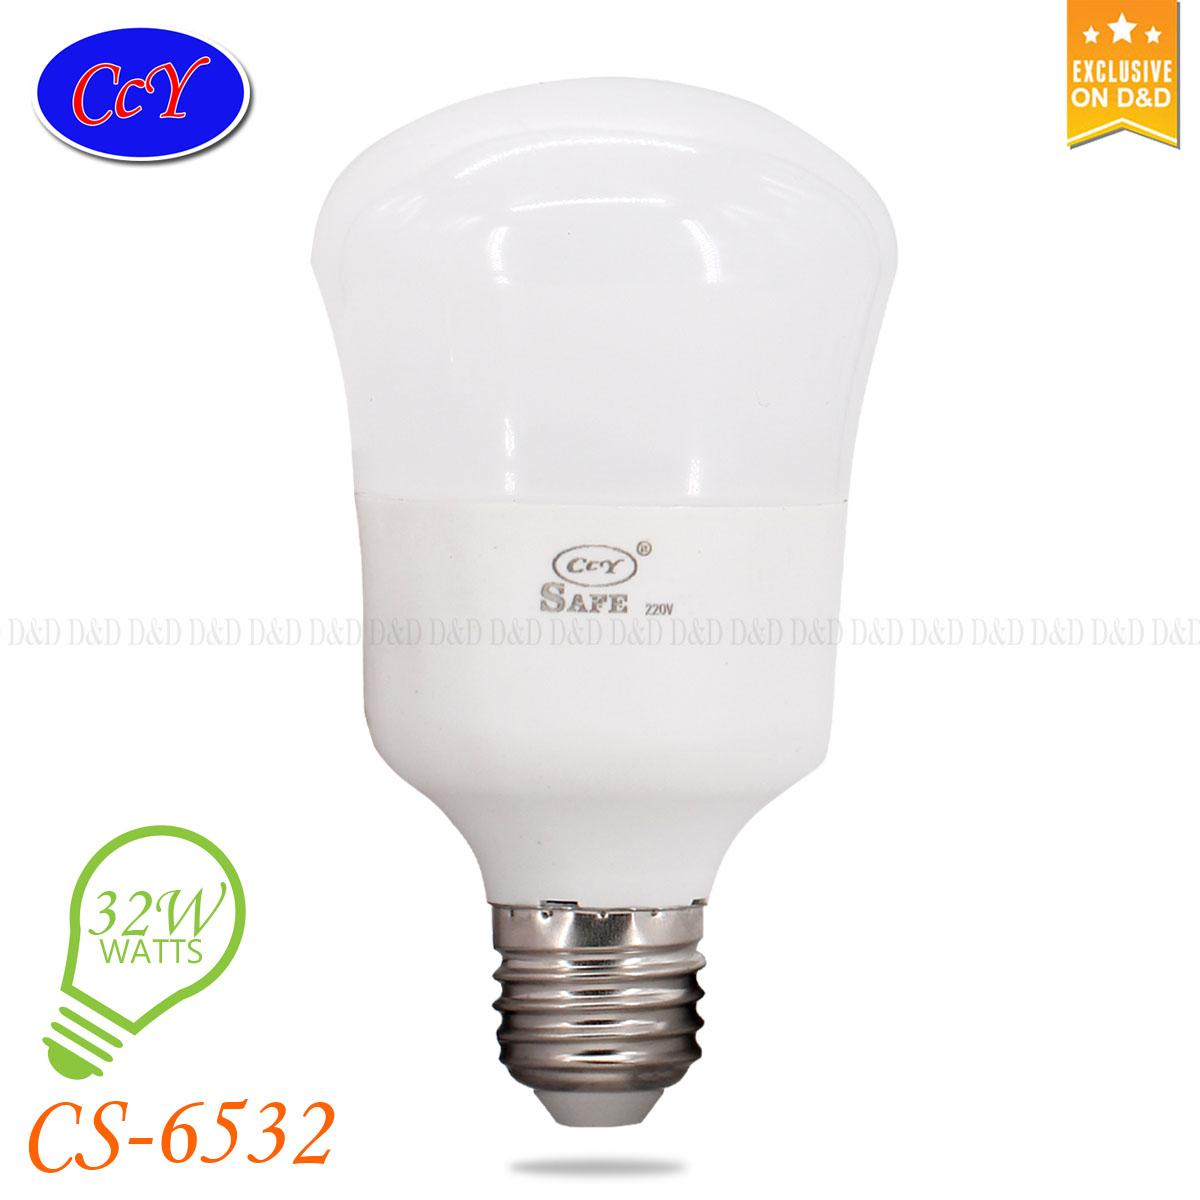 Light Bulbs For Sale Led Prices Brands Review In 10 Watt And Driver Related Question Electrical Engineering Ddccy Safe 32 Watts Bulb Energy Savinglong Durationhigh Brightspotlight